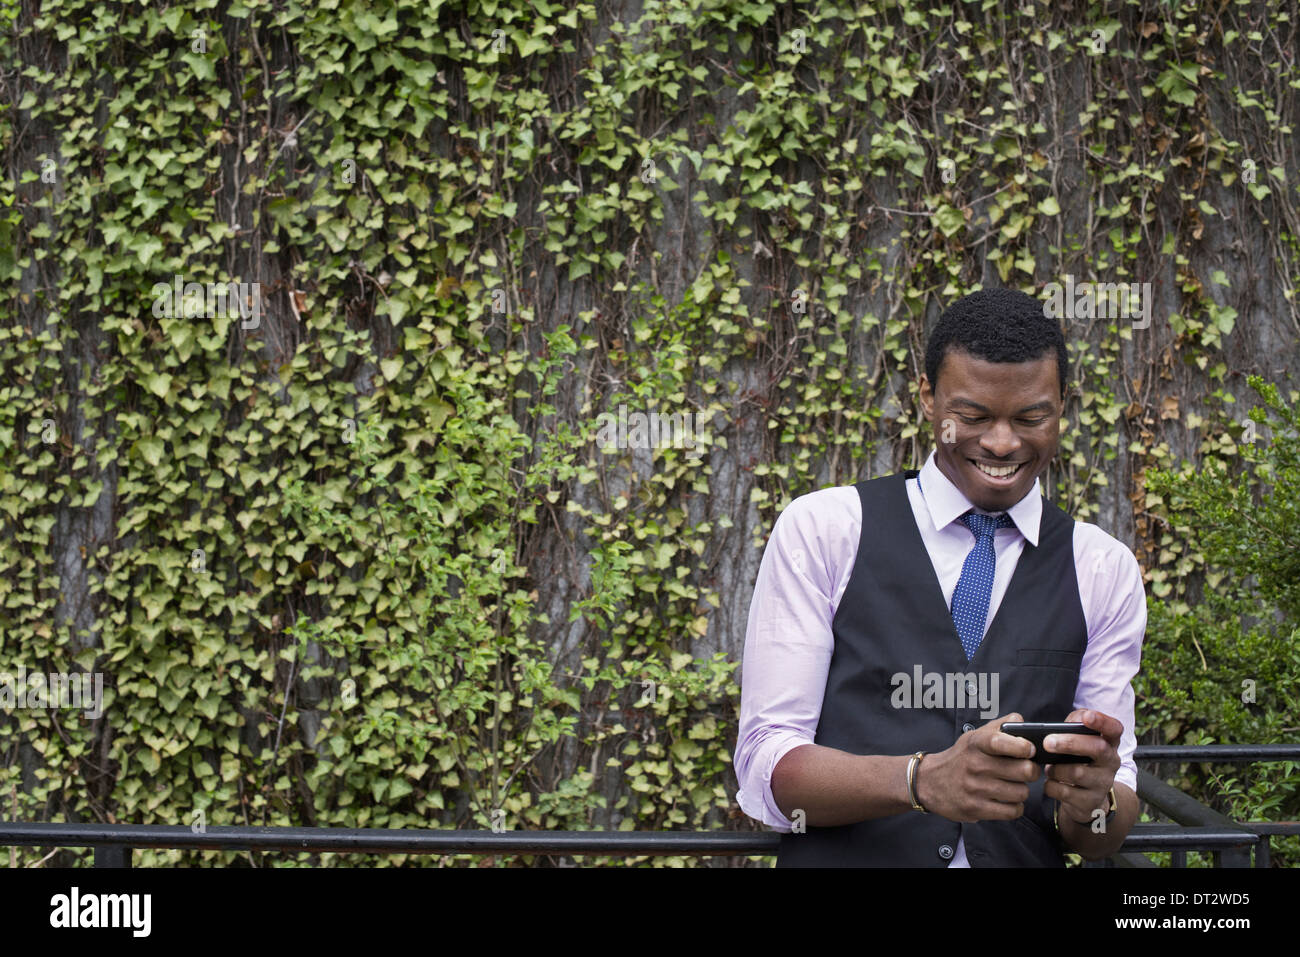 City park wall covered in climbing plants and ivy A young man in a waistcoat shirt and tie checking his phone - Stock Image